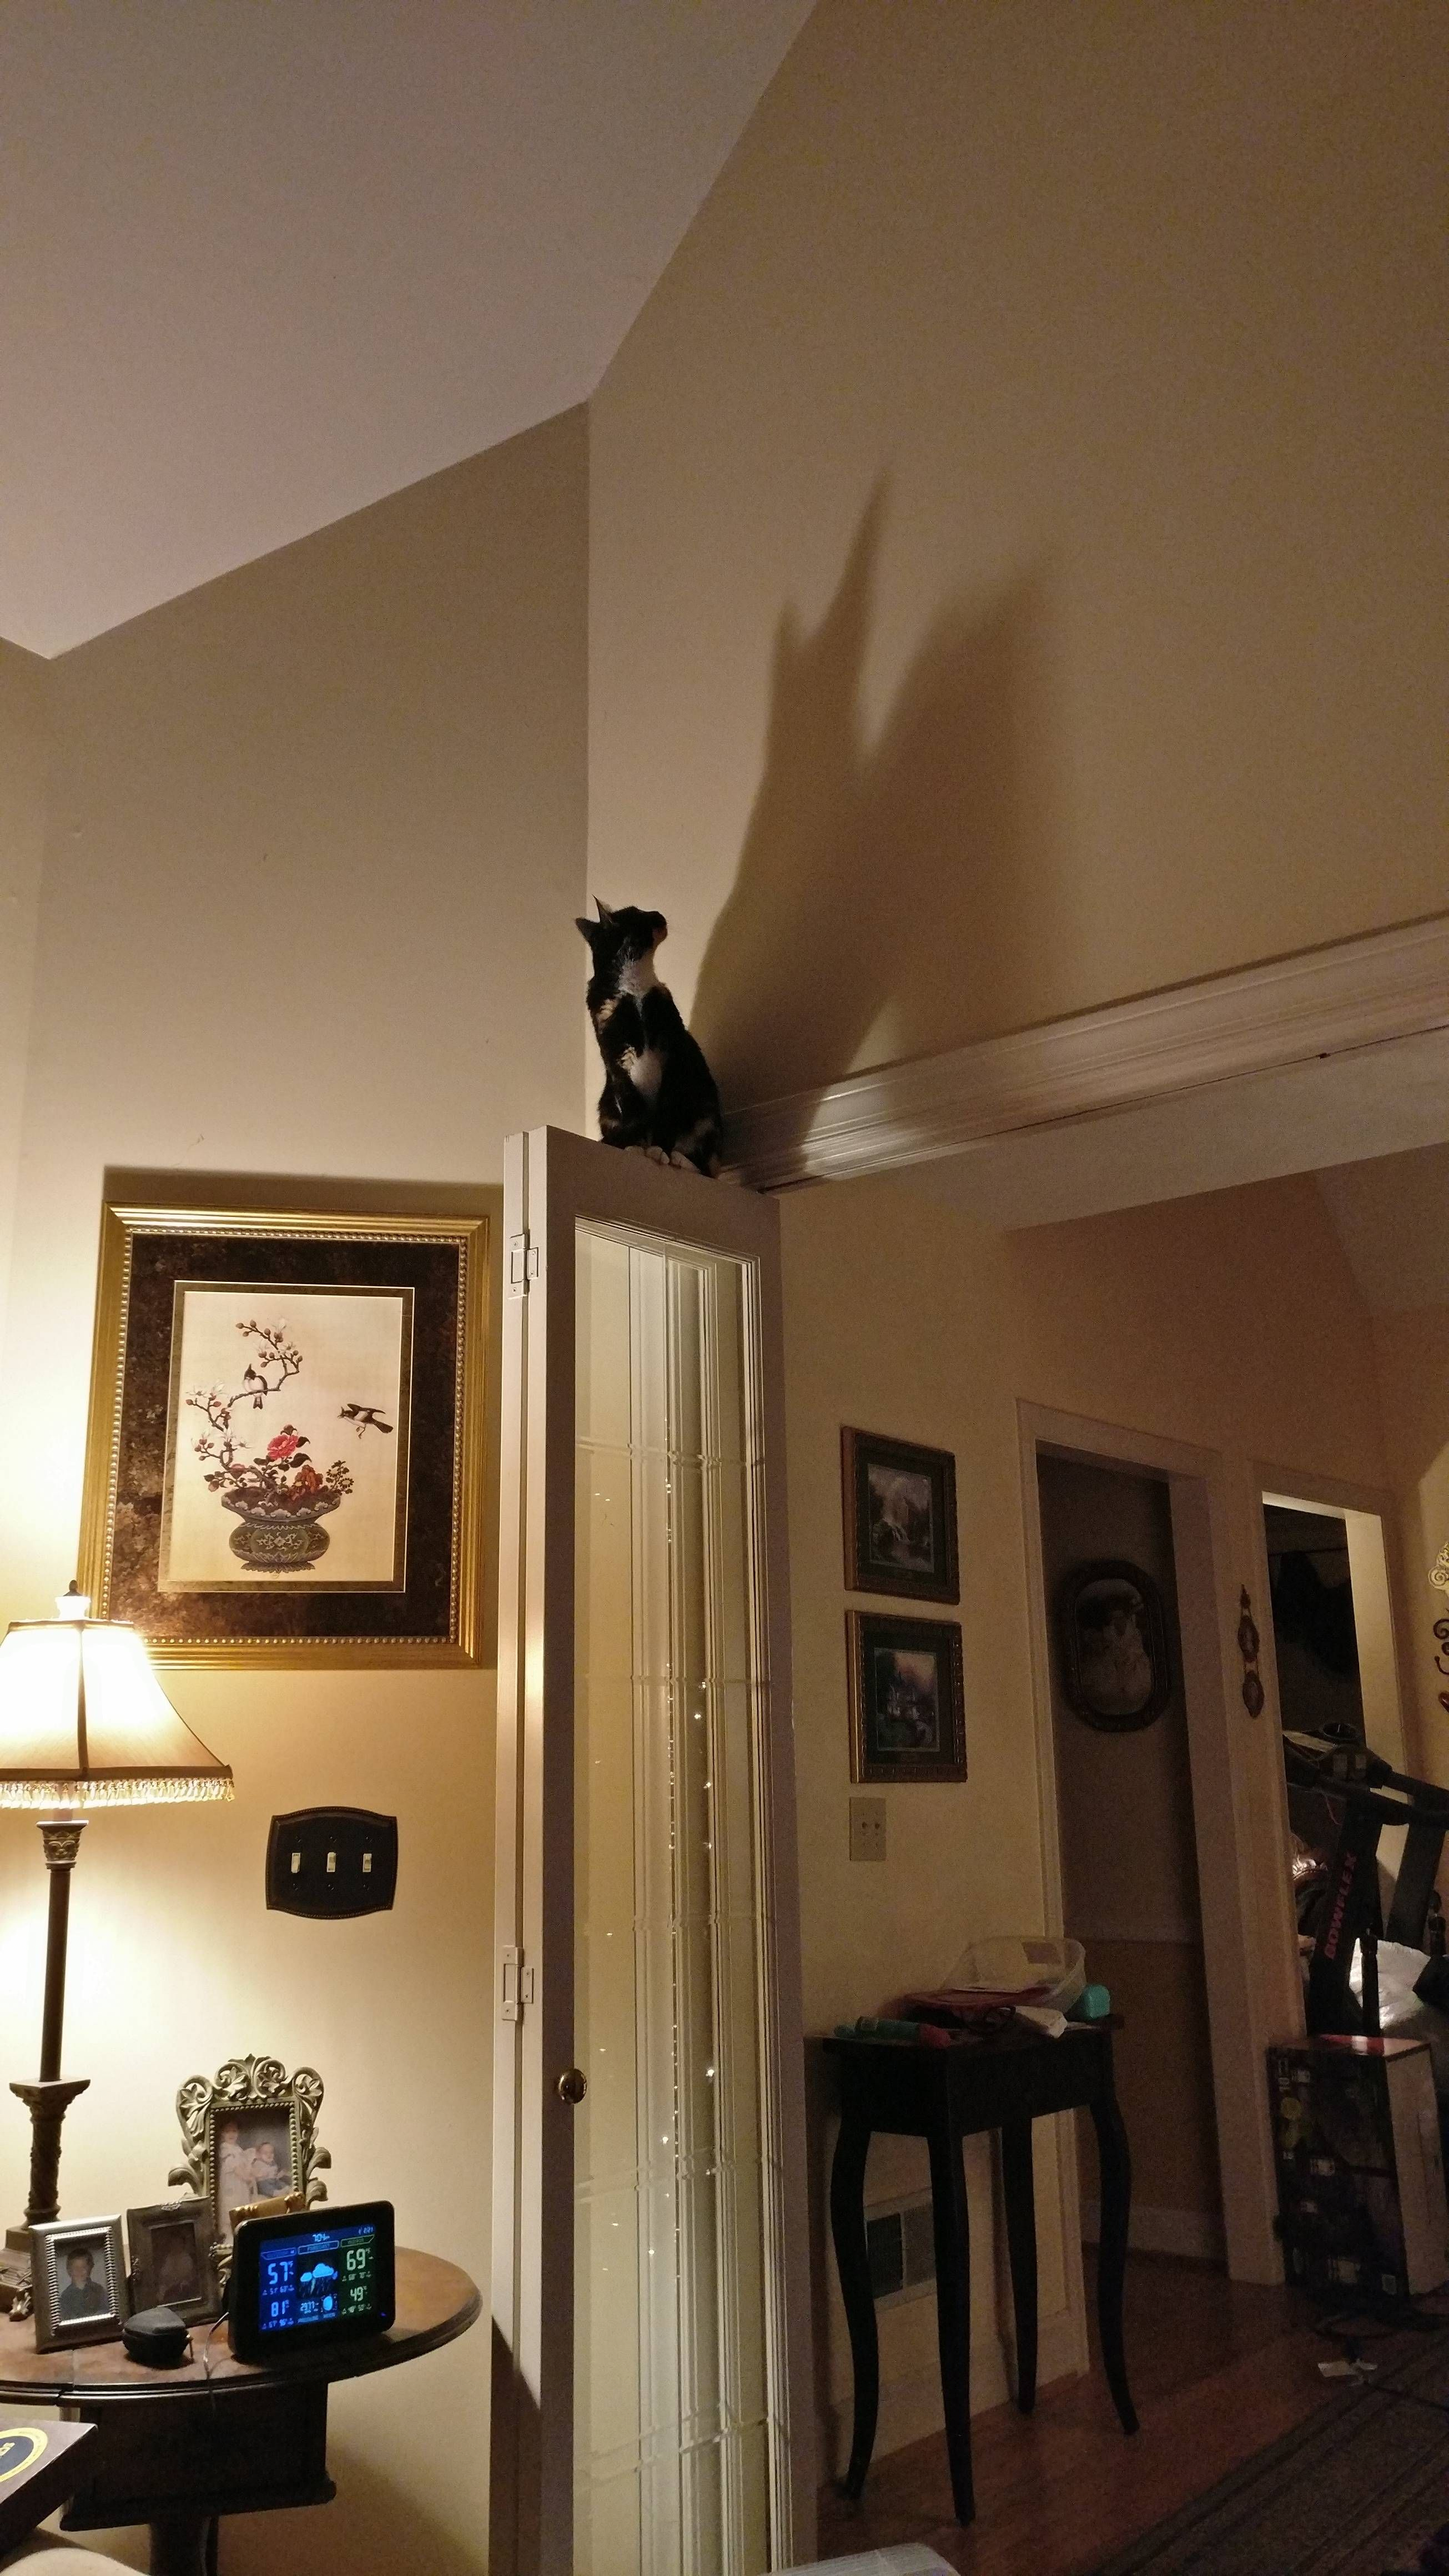 My cat jumps to extreme heights and thinks she's Batman